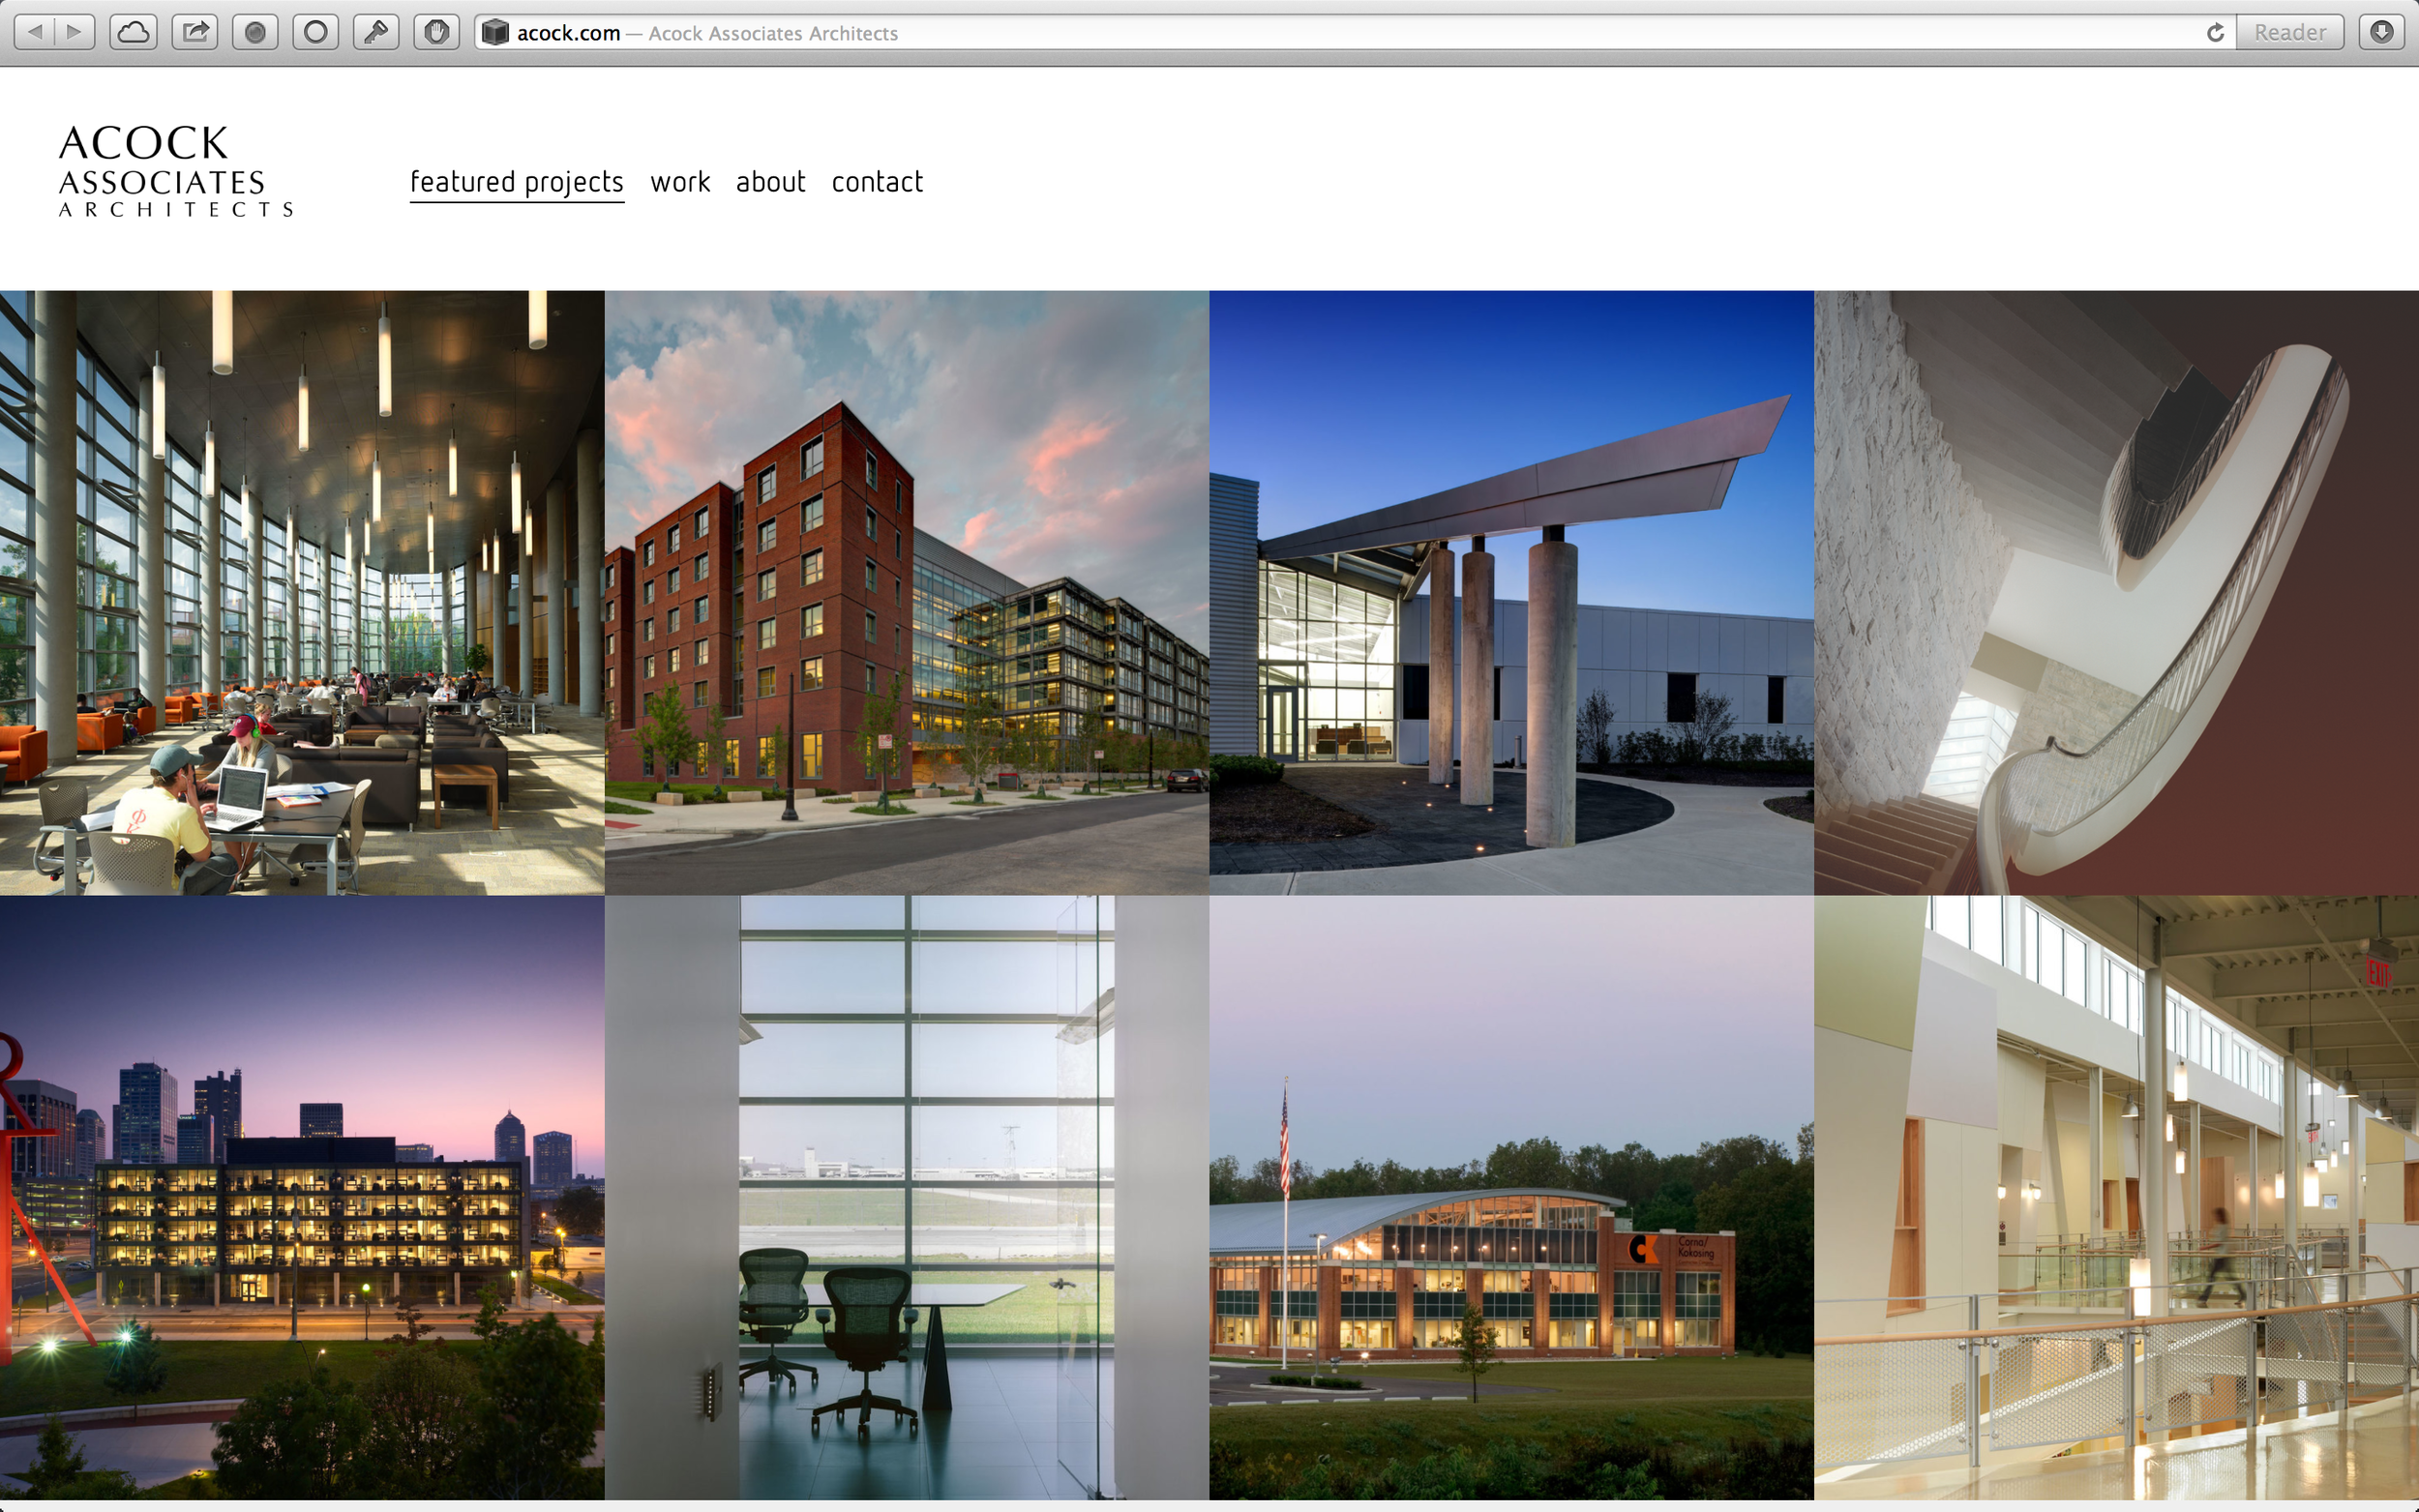 New, Acock Associates Architects landing page.